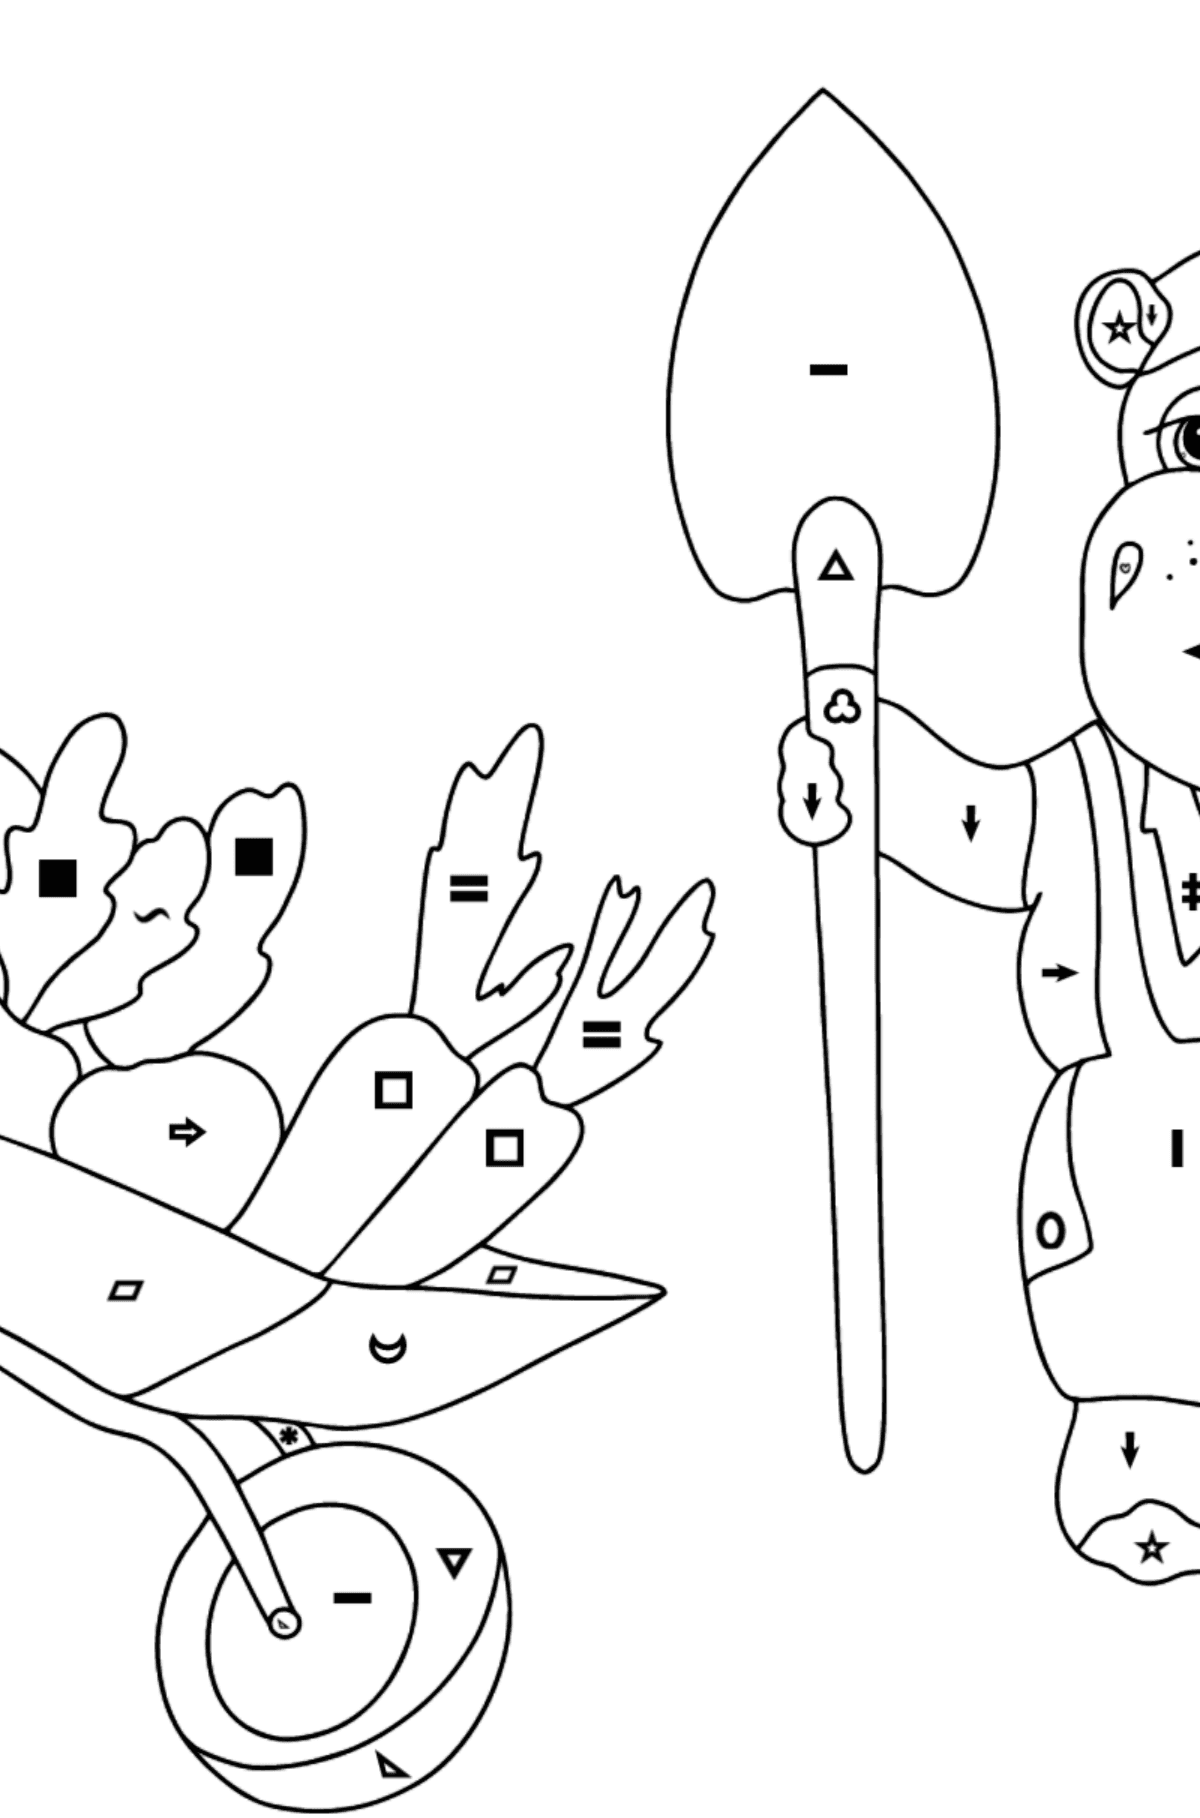 Coloring Page - Hippos are Harvesting a Big Crop - Coloring by Symbols and Geometric Shapes for Kids